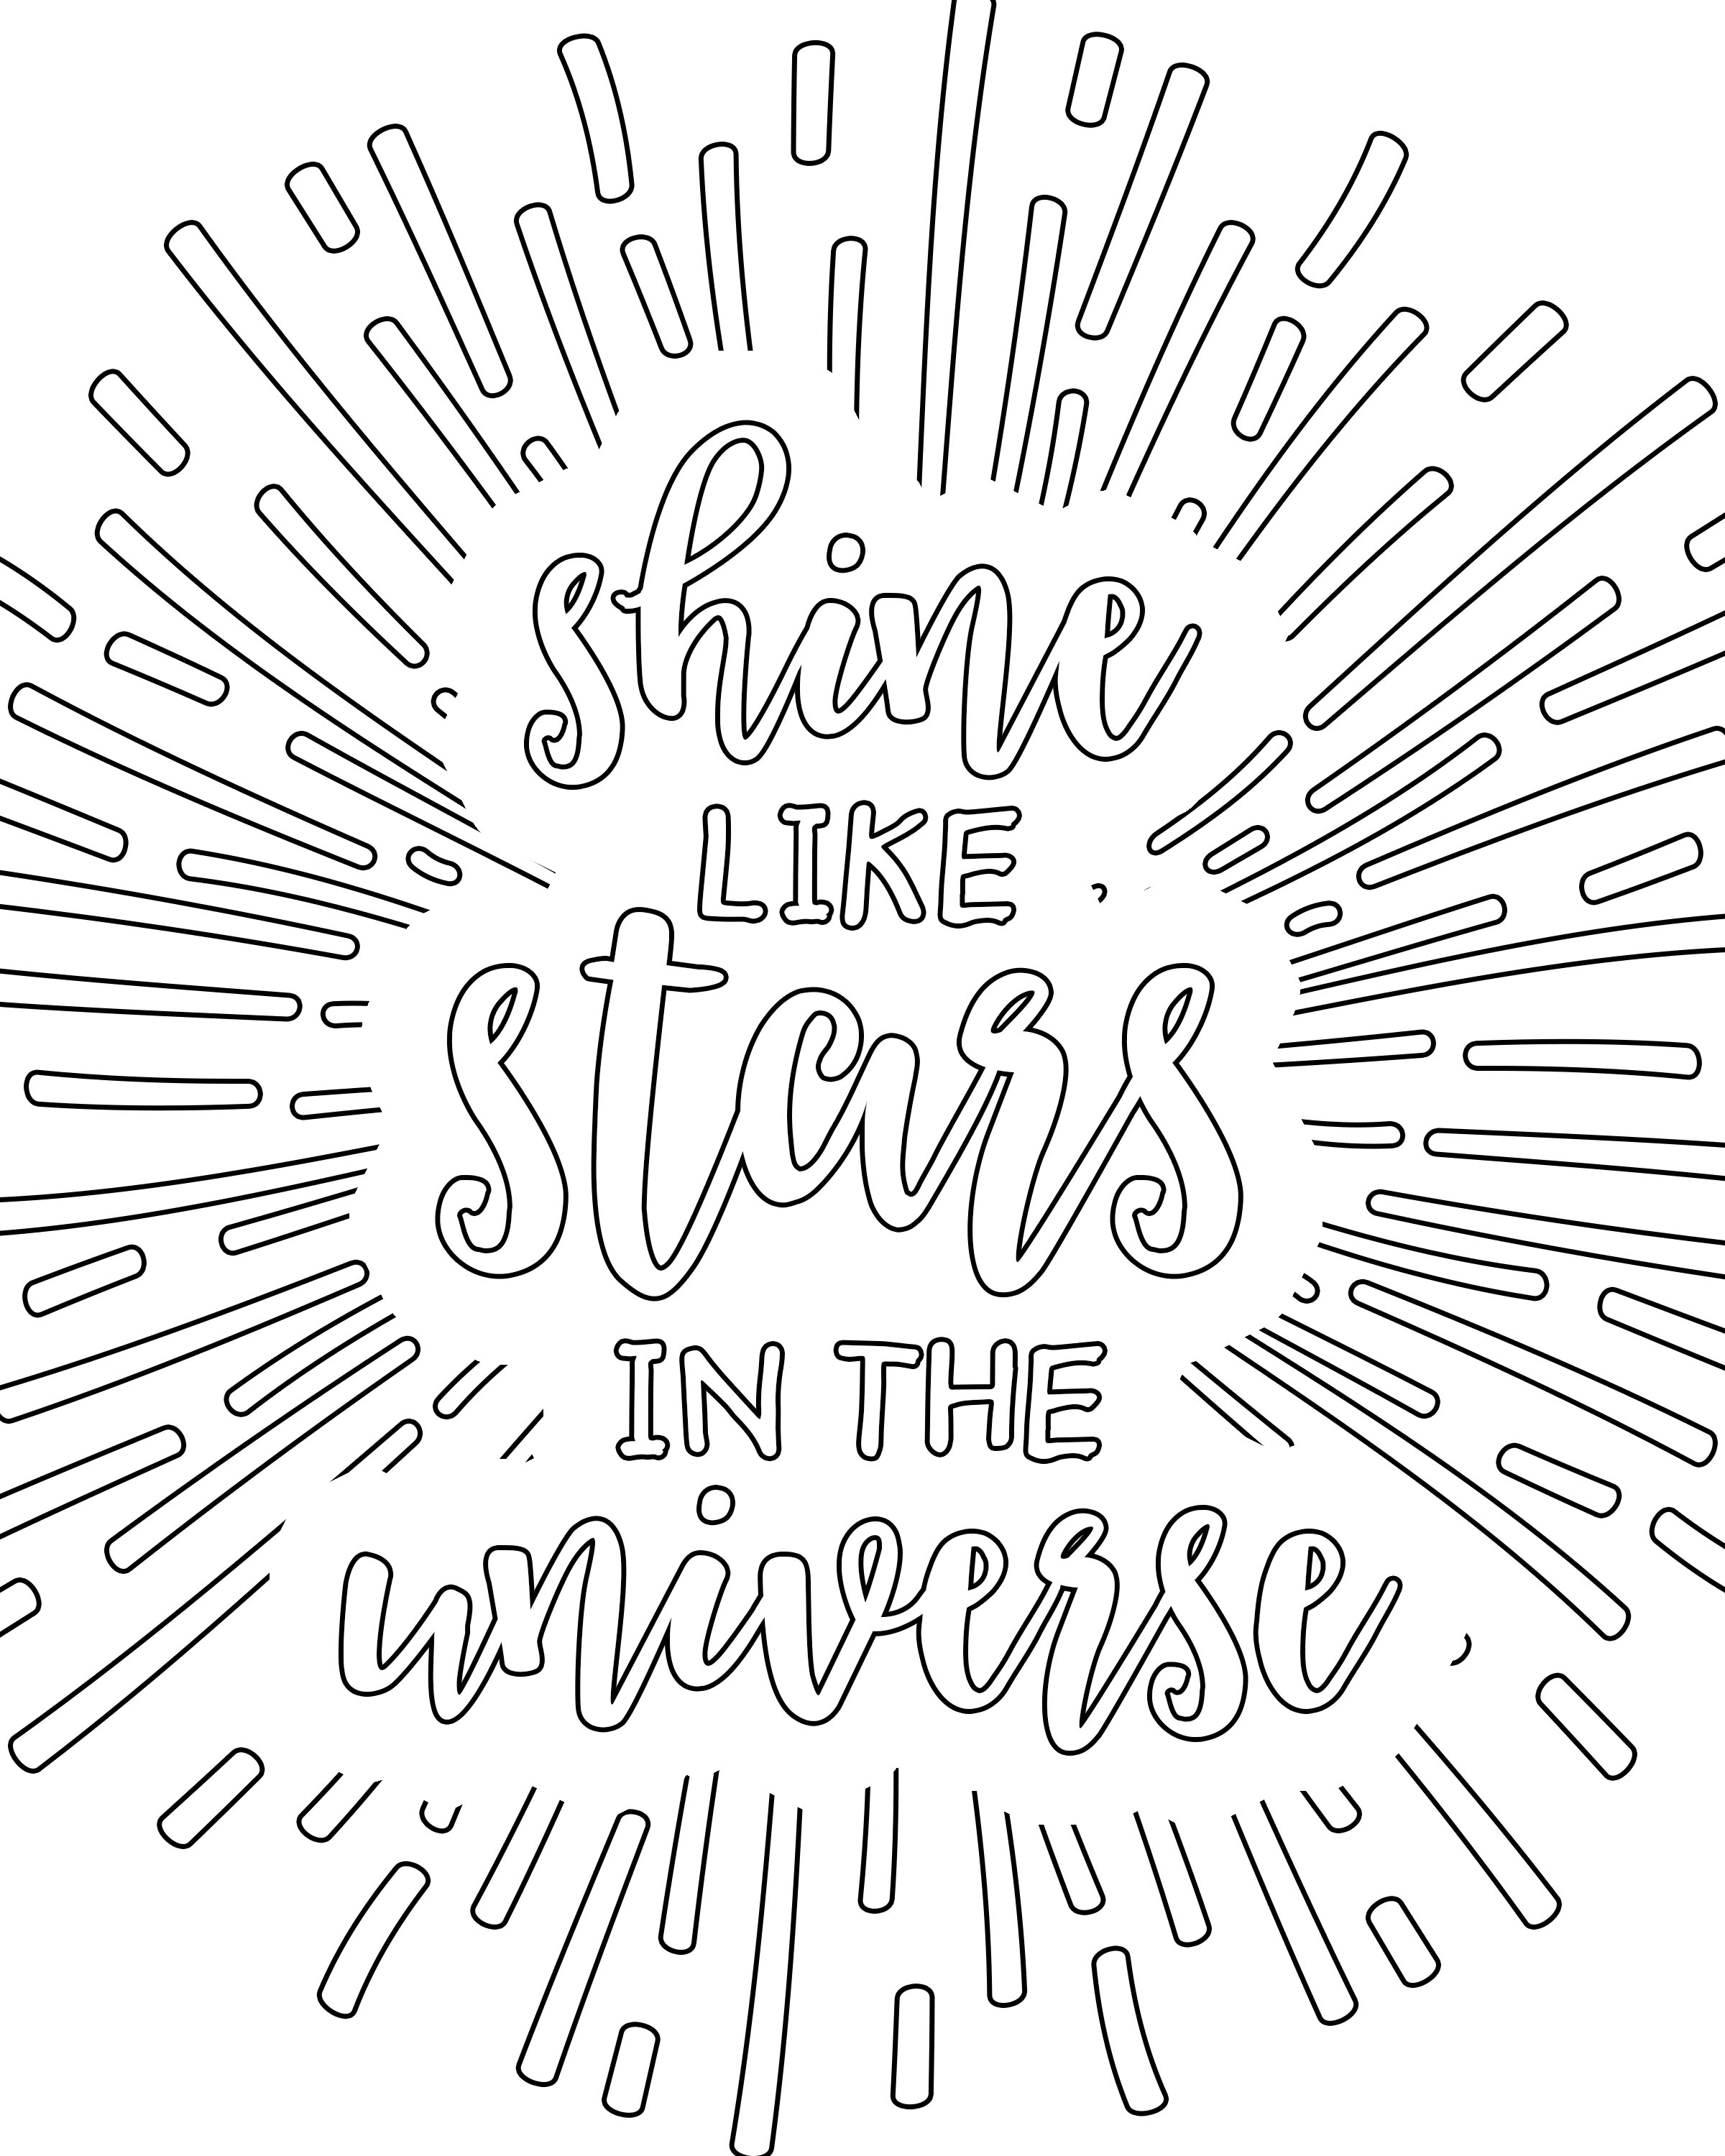 shine like stars in the universe free printable adult coloring pages scripture wit - Free Printable Coloring Book Pages